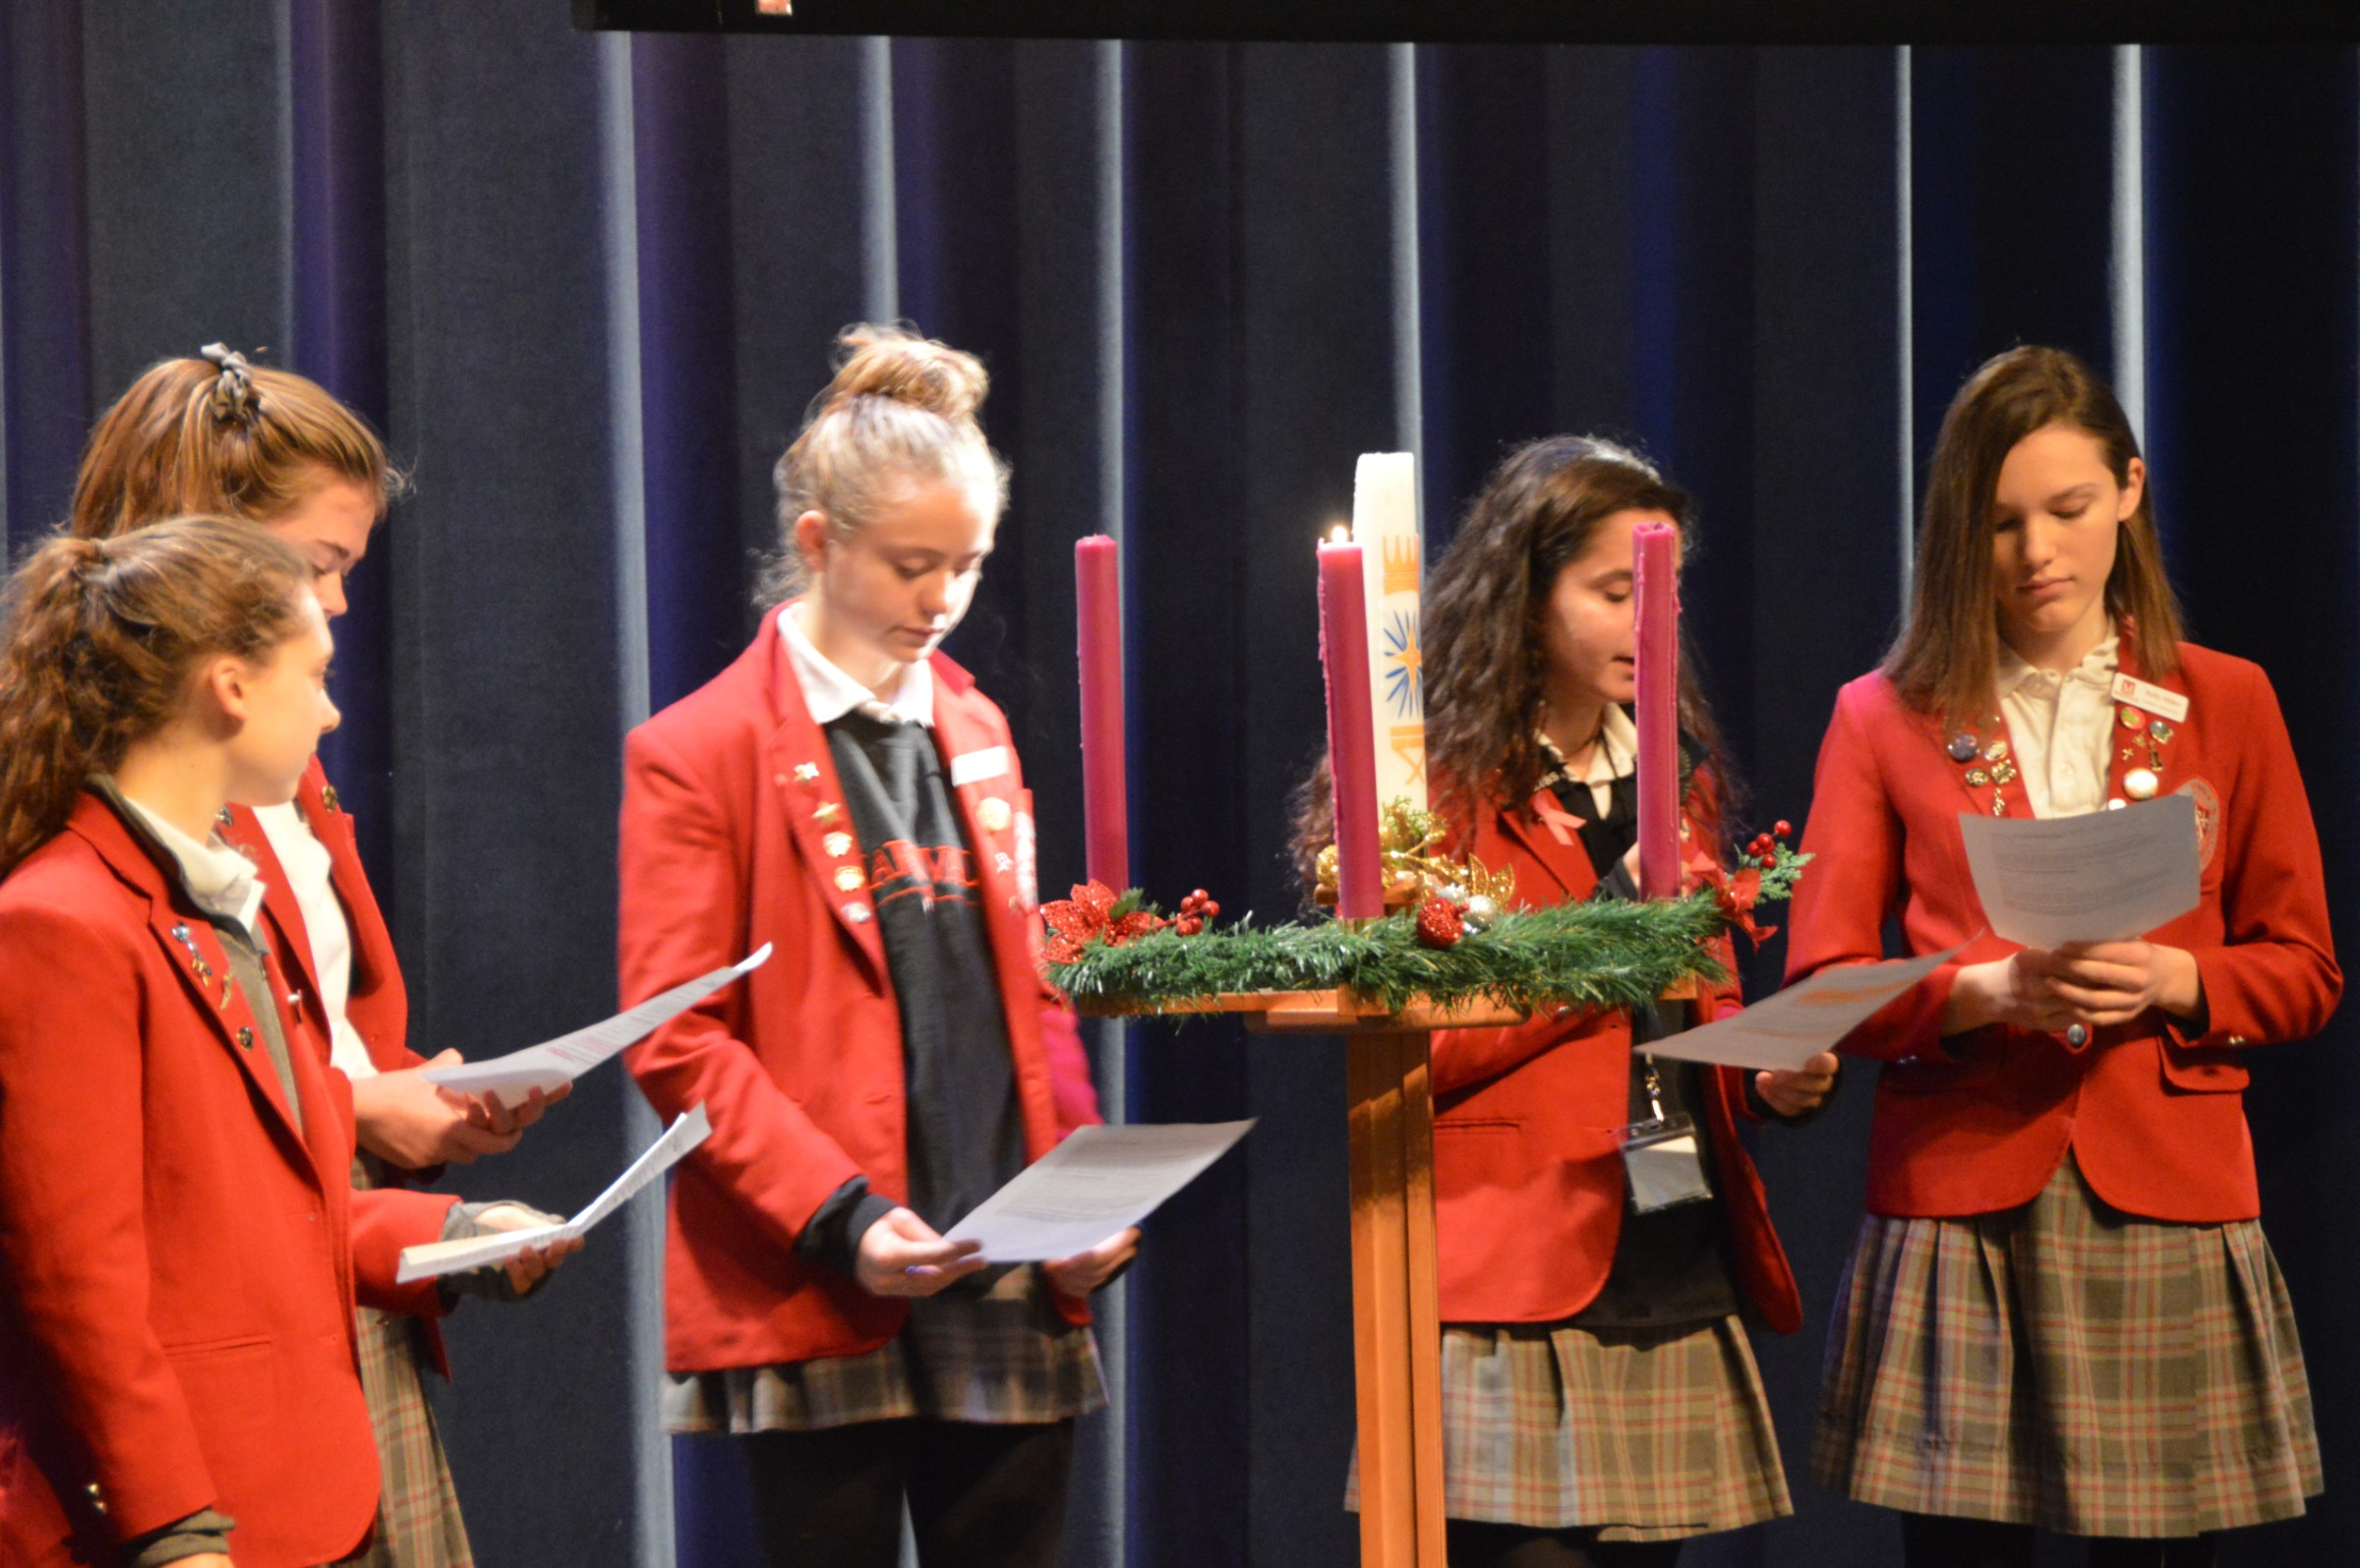 Maryvale students lead Advent prayer service